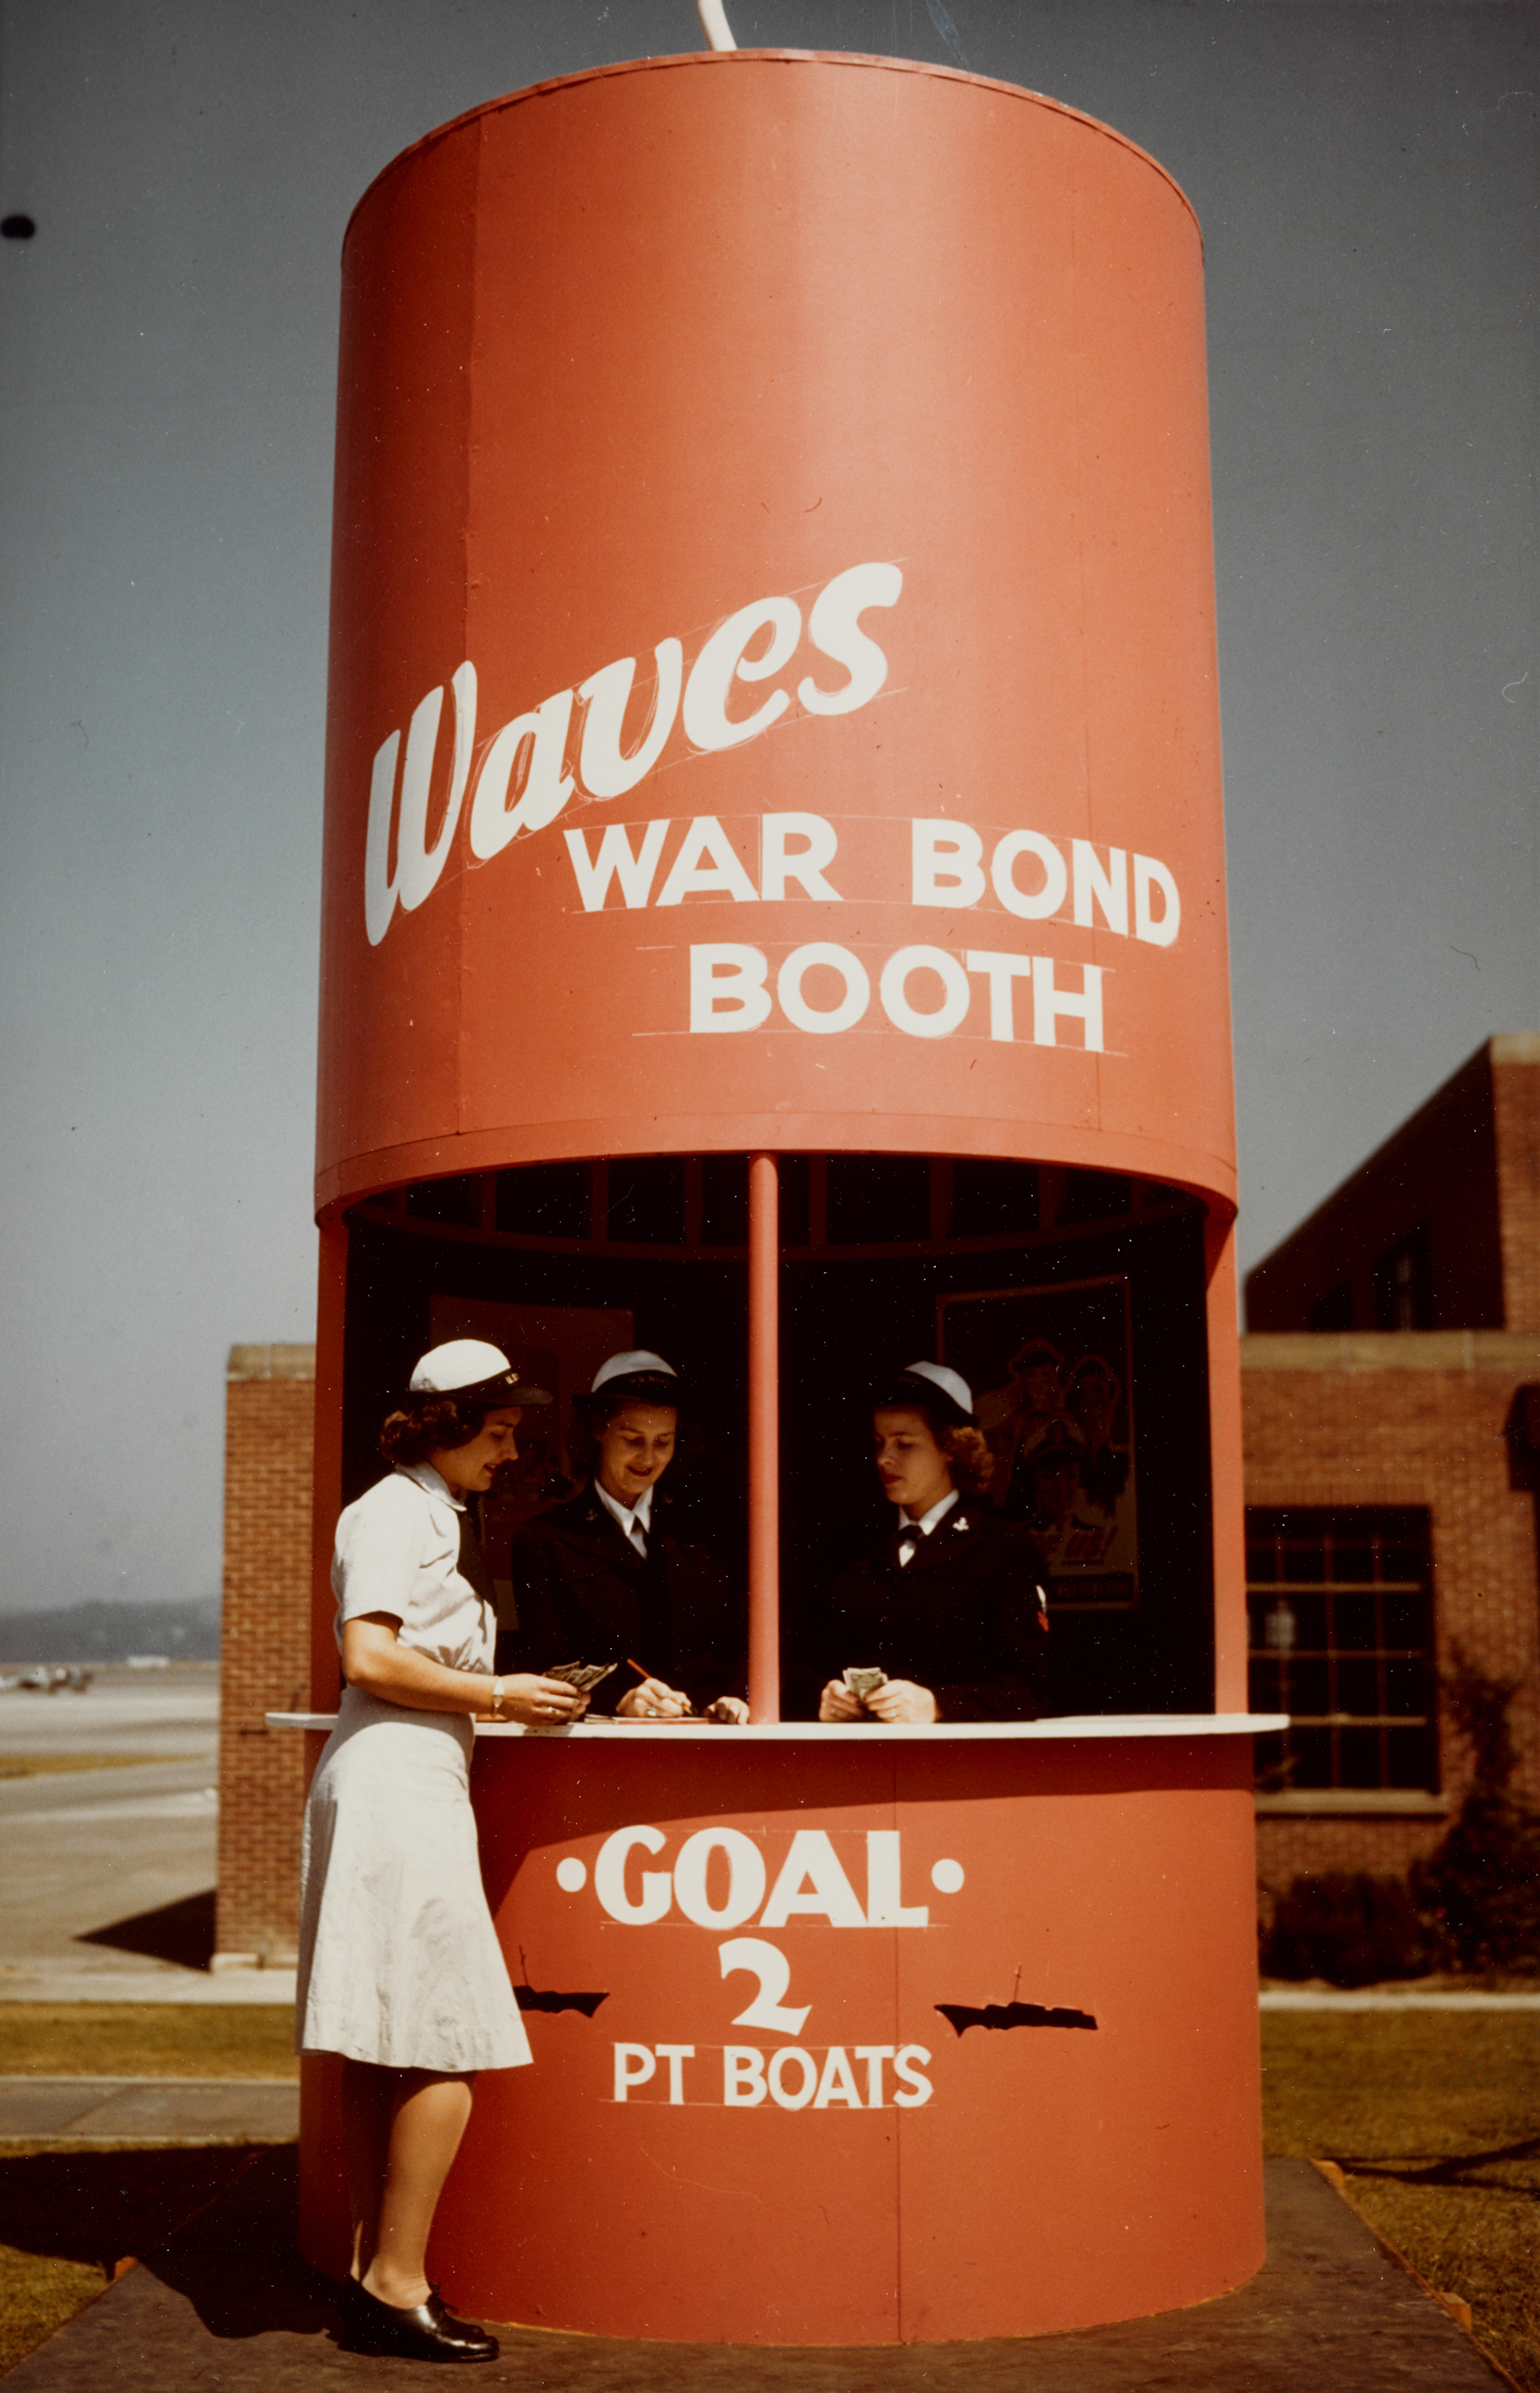 WAVES Sell War Bonds from Firecracker-Shaped Booth